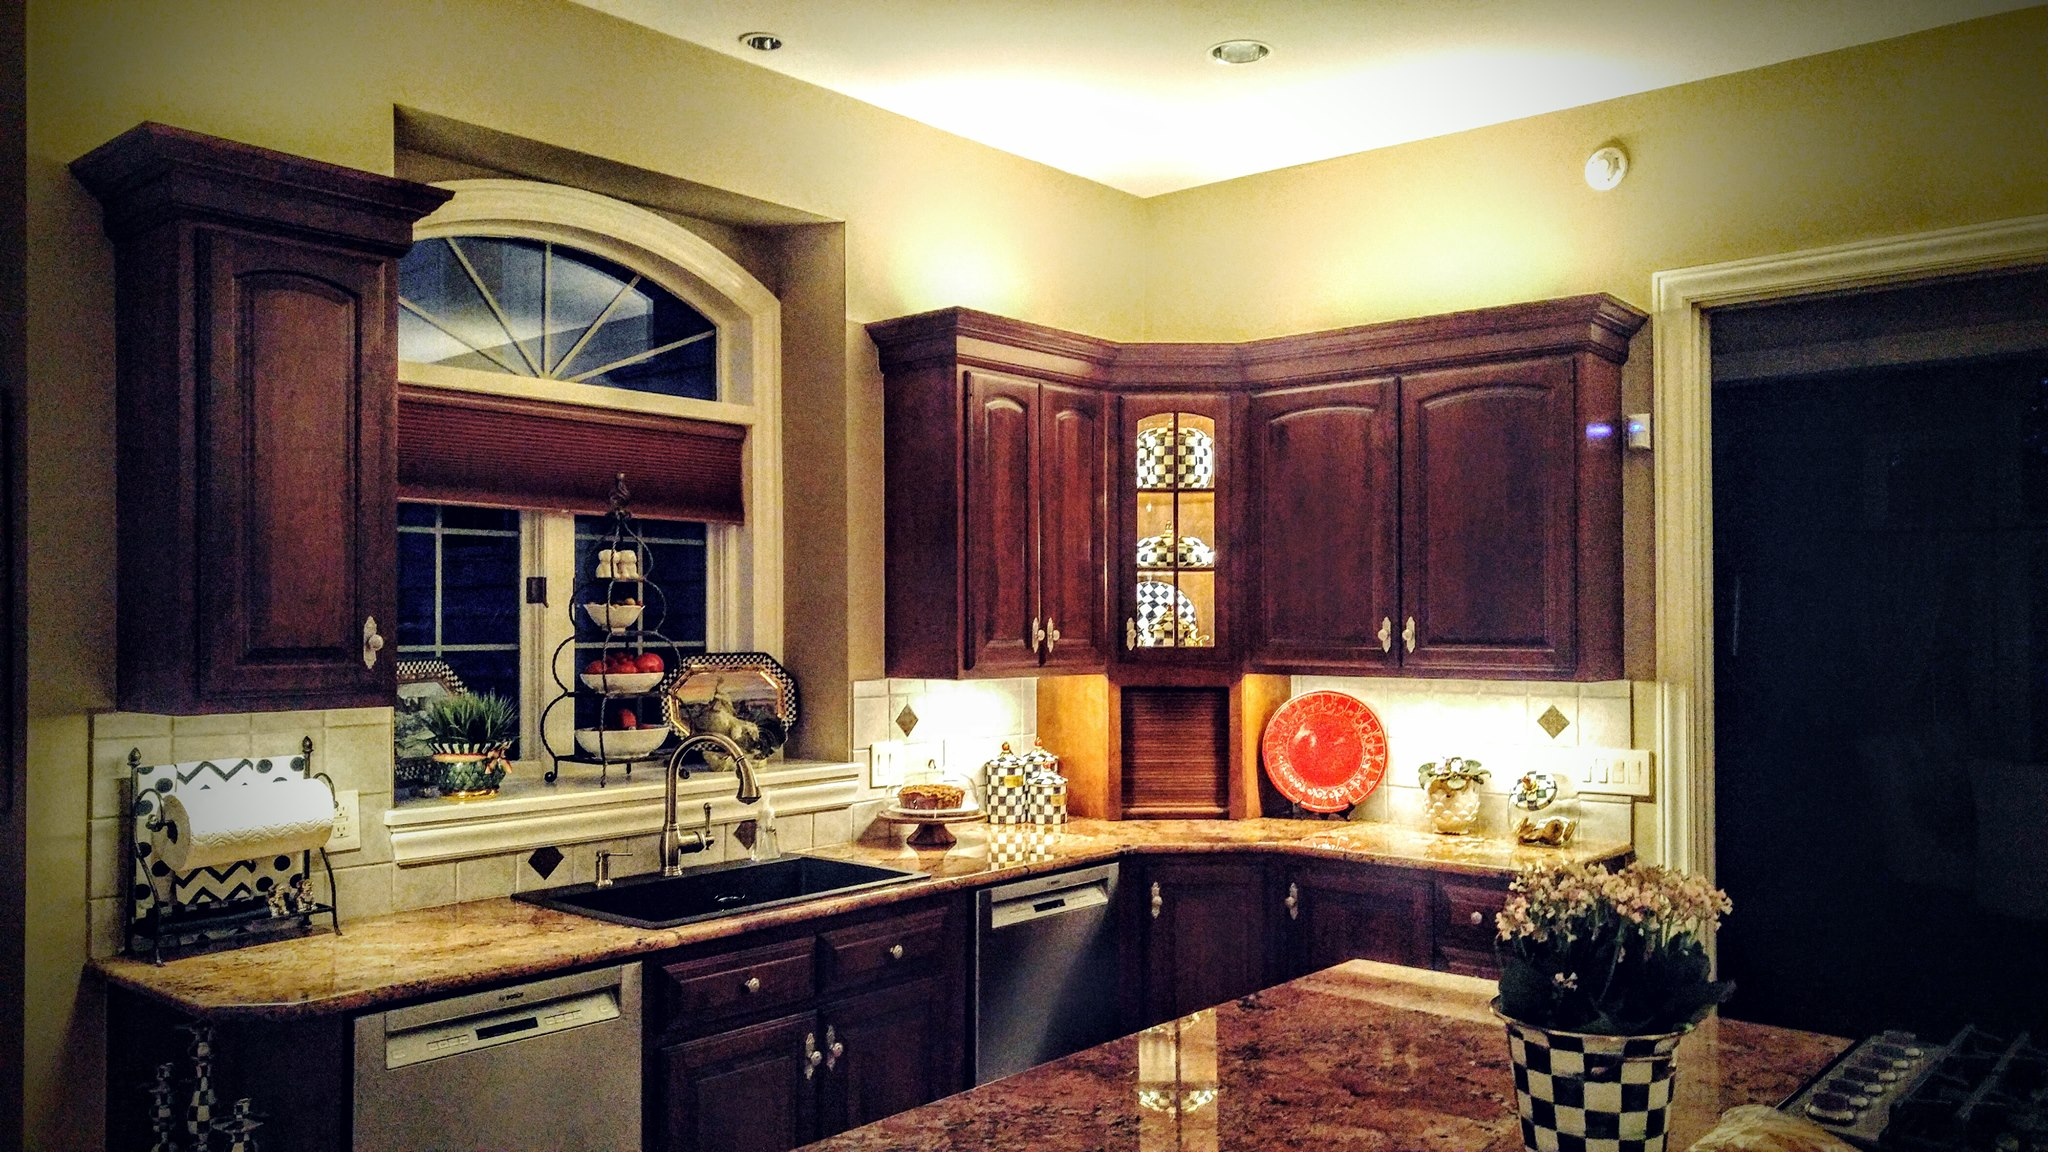 Under Cabinet Lighting In Kitchen Kitchen Up Lighting And Under Cabinet Lighting Pilosi Electric